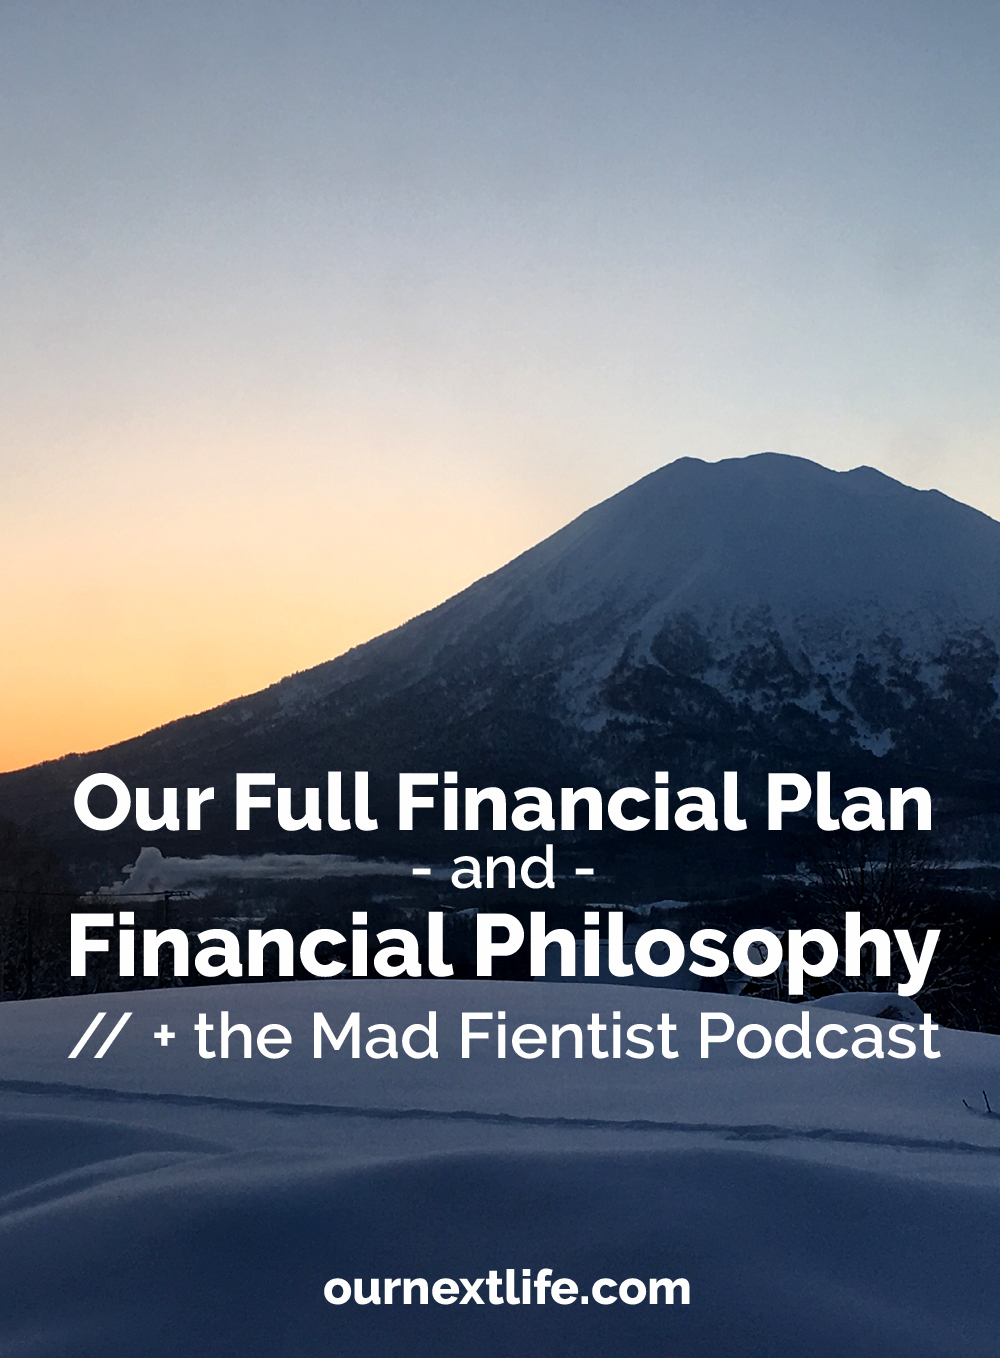 Our Next Life on the Mad Fientist podcast! // Our full financial plan and philosophy, early retirement, financial independence, values-based spending and investing